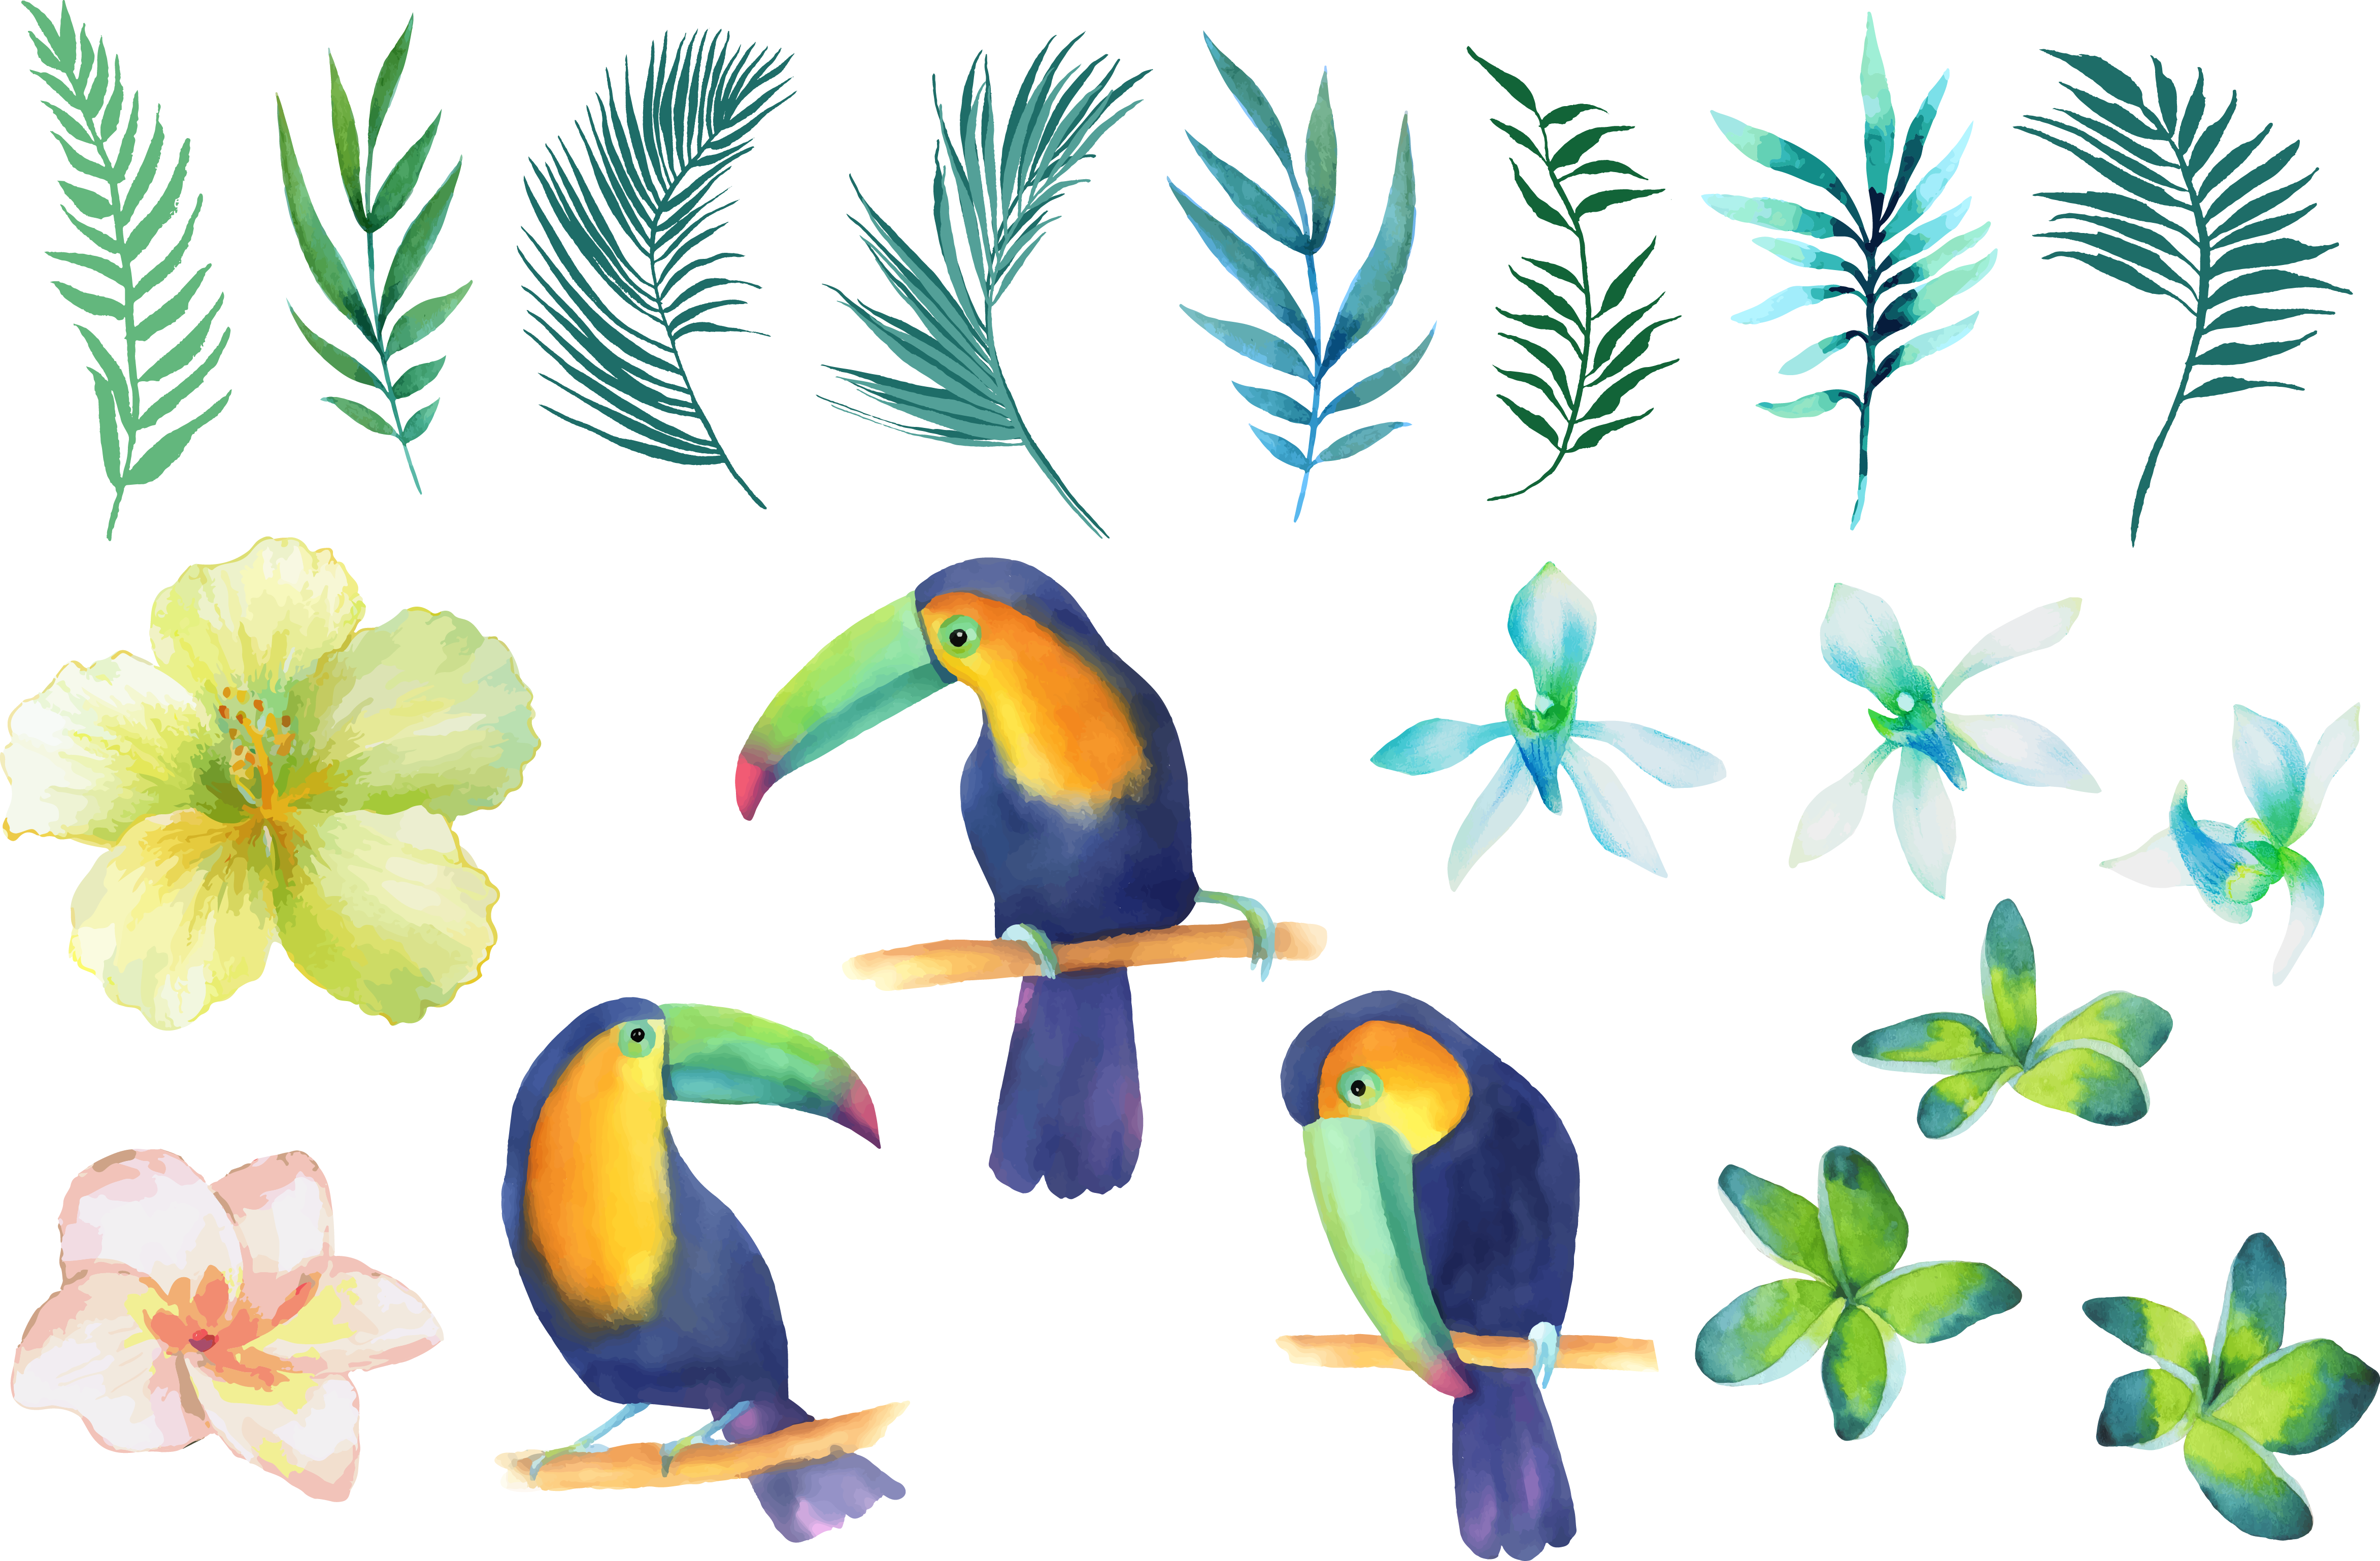 Birds on tree clipart freeuse library Parrot Beak Watercolor painting Clip art - Small fresh hand-painted ... freeuse library